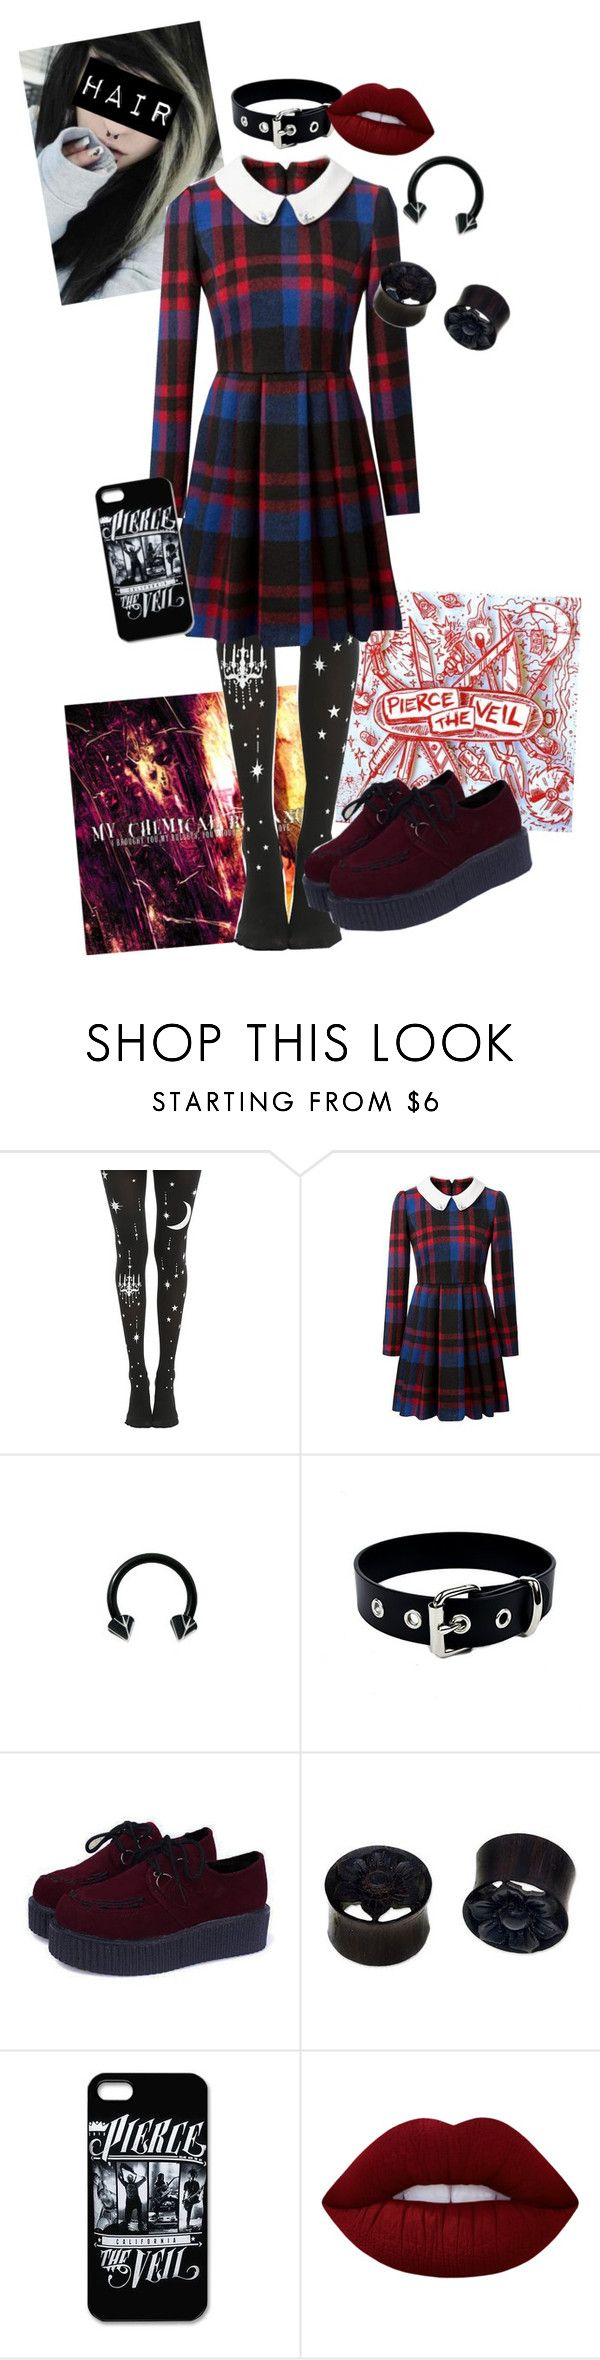 """""""The First Punch - Pierce The Veil"""" by chemicalfallout249 ❤ liked on Polyvore featuring NOVICA and Lime Crime"""